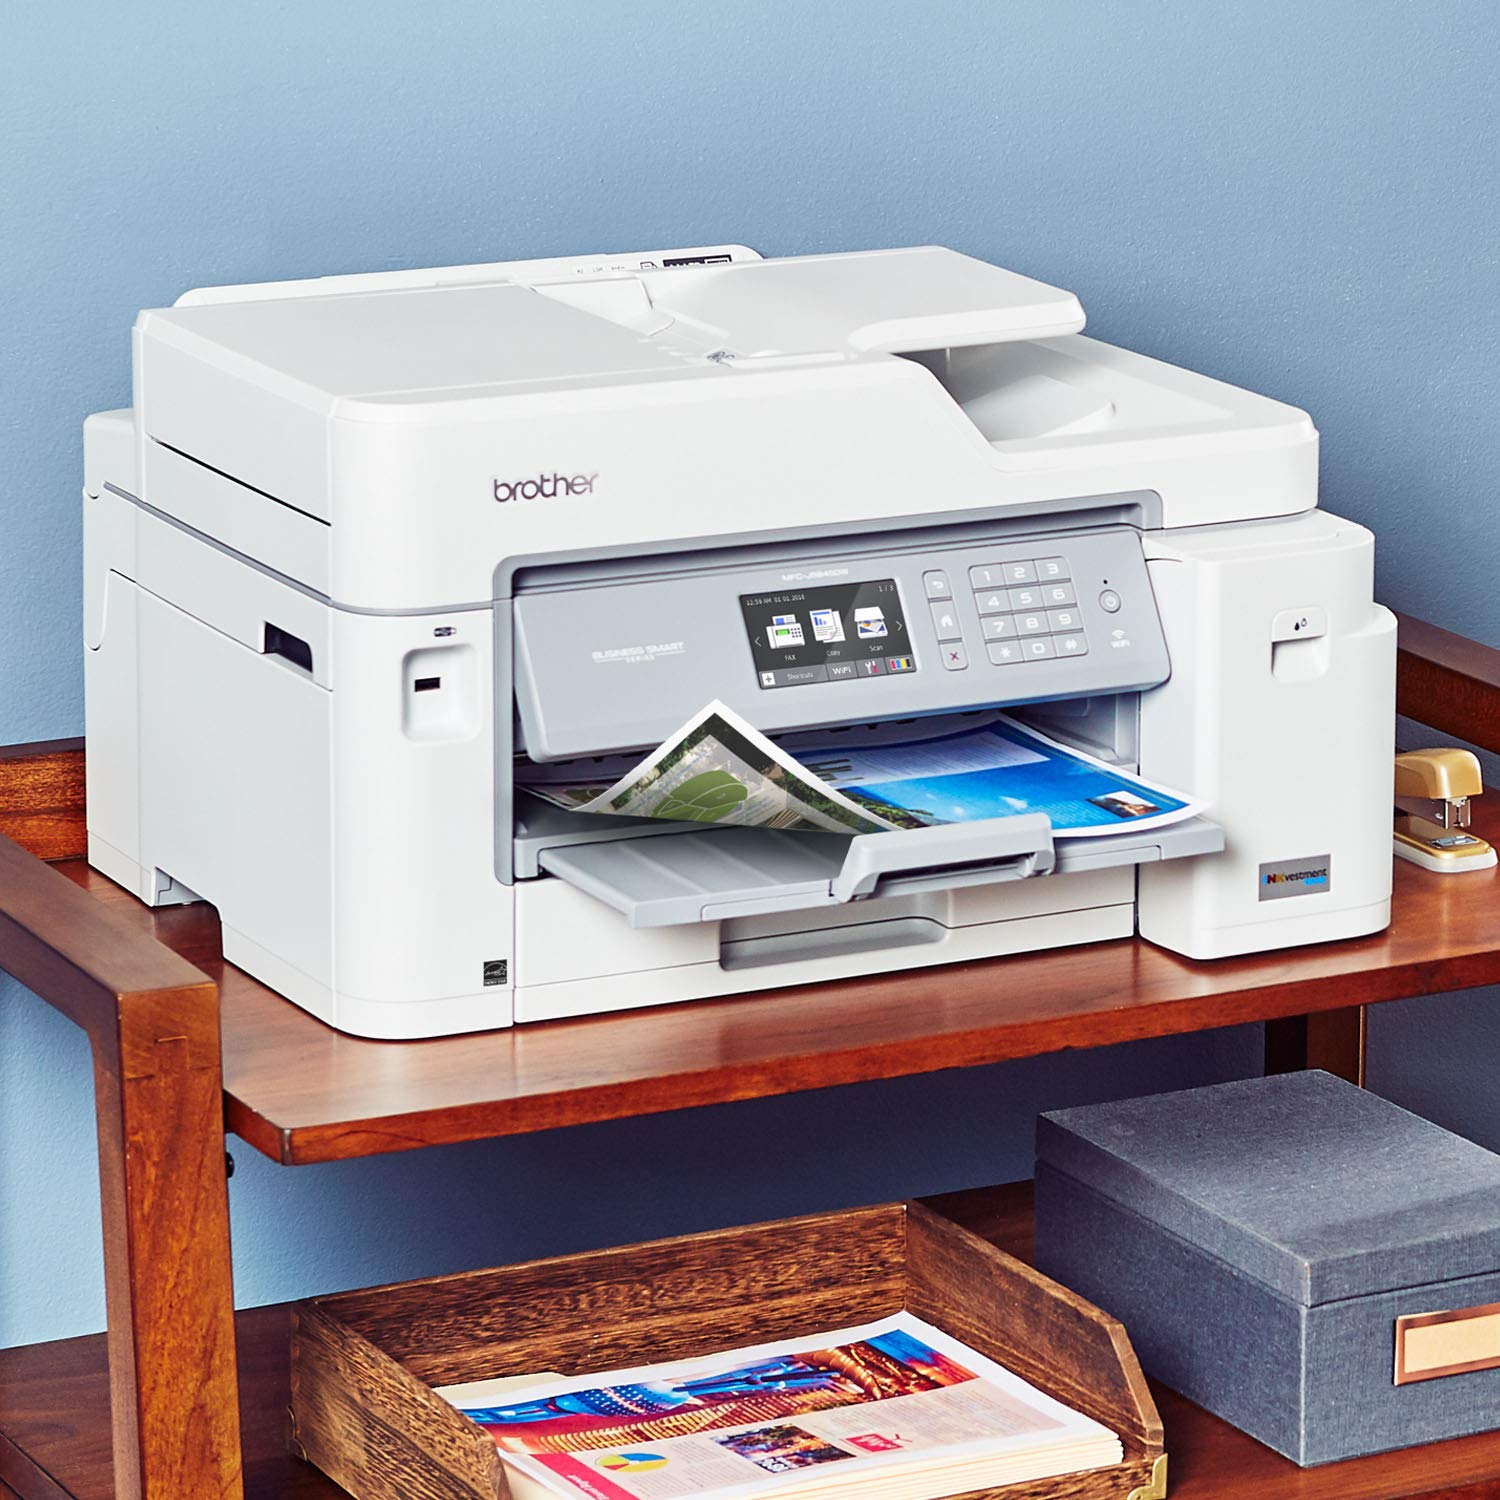 Brother Inkjet Printer, MFC-J5845DW, INKvestment Color Inkjet All-in-One Printer with Wireless, Duplex Printing and Up to 1-Year of Ink in-Box, Amazon Dash Replenishment Enabled by Brother (Image #3)